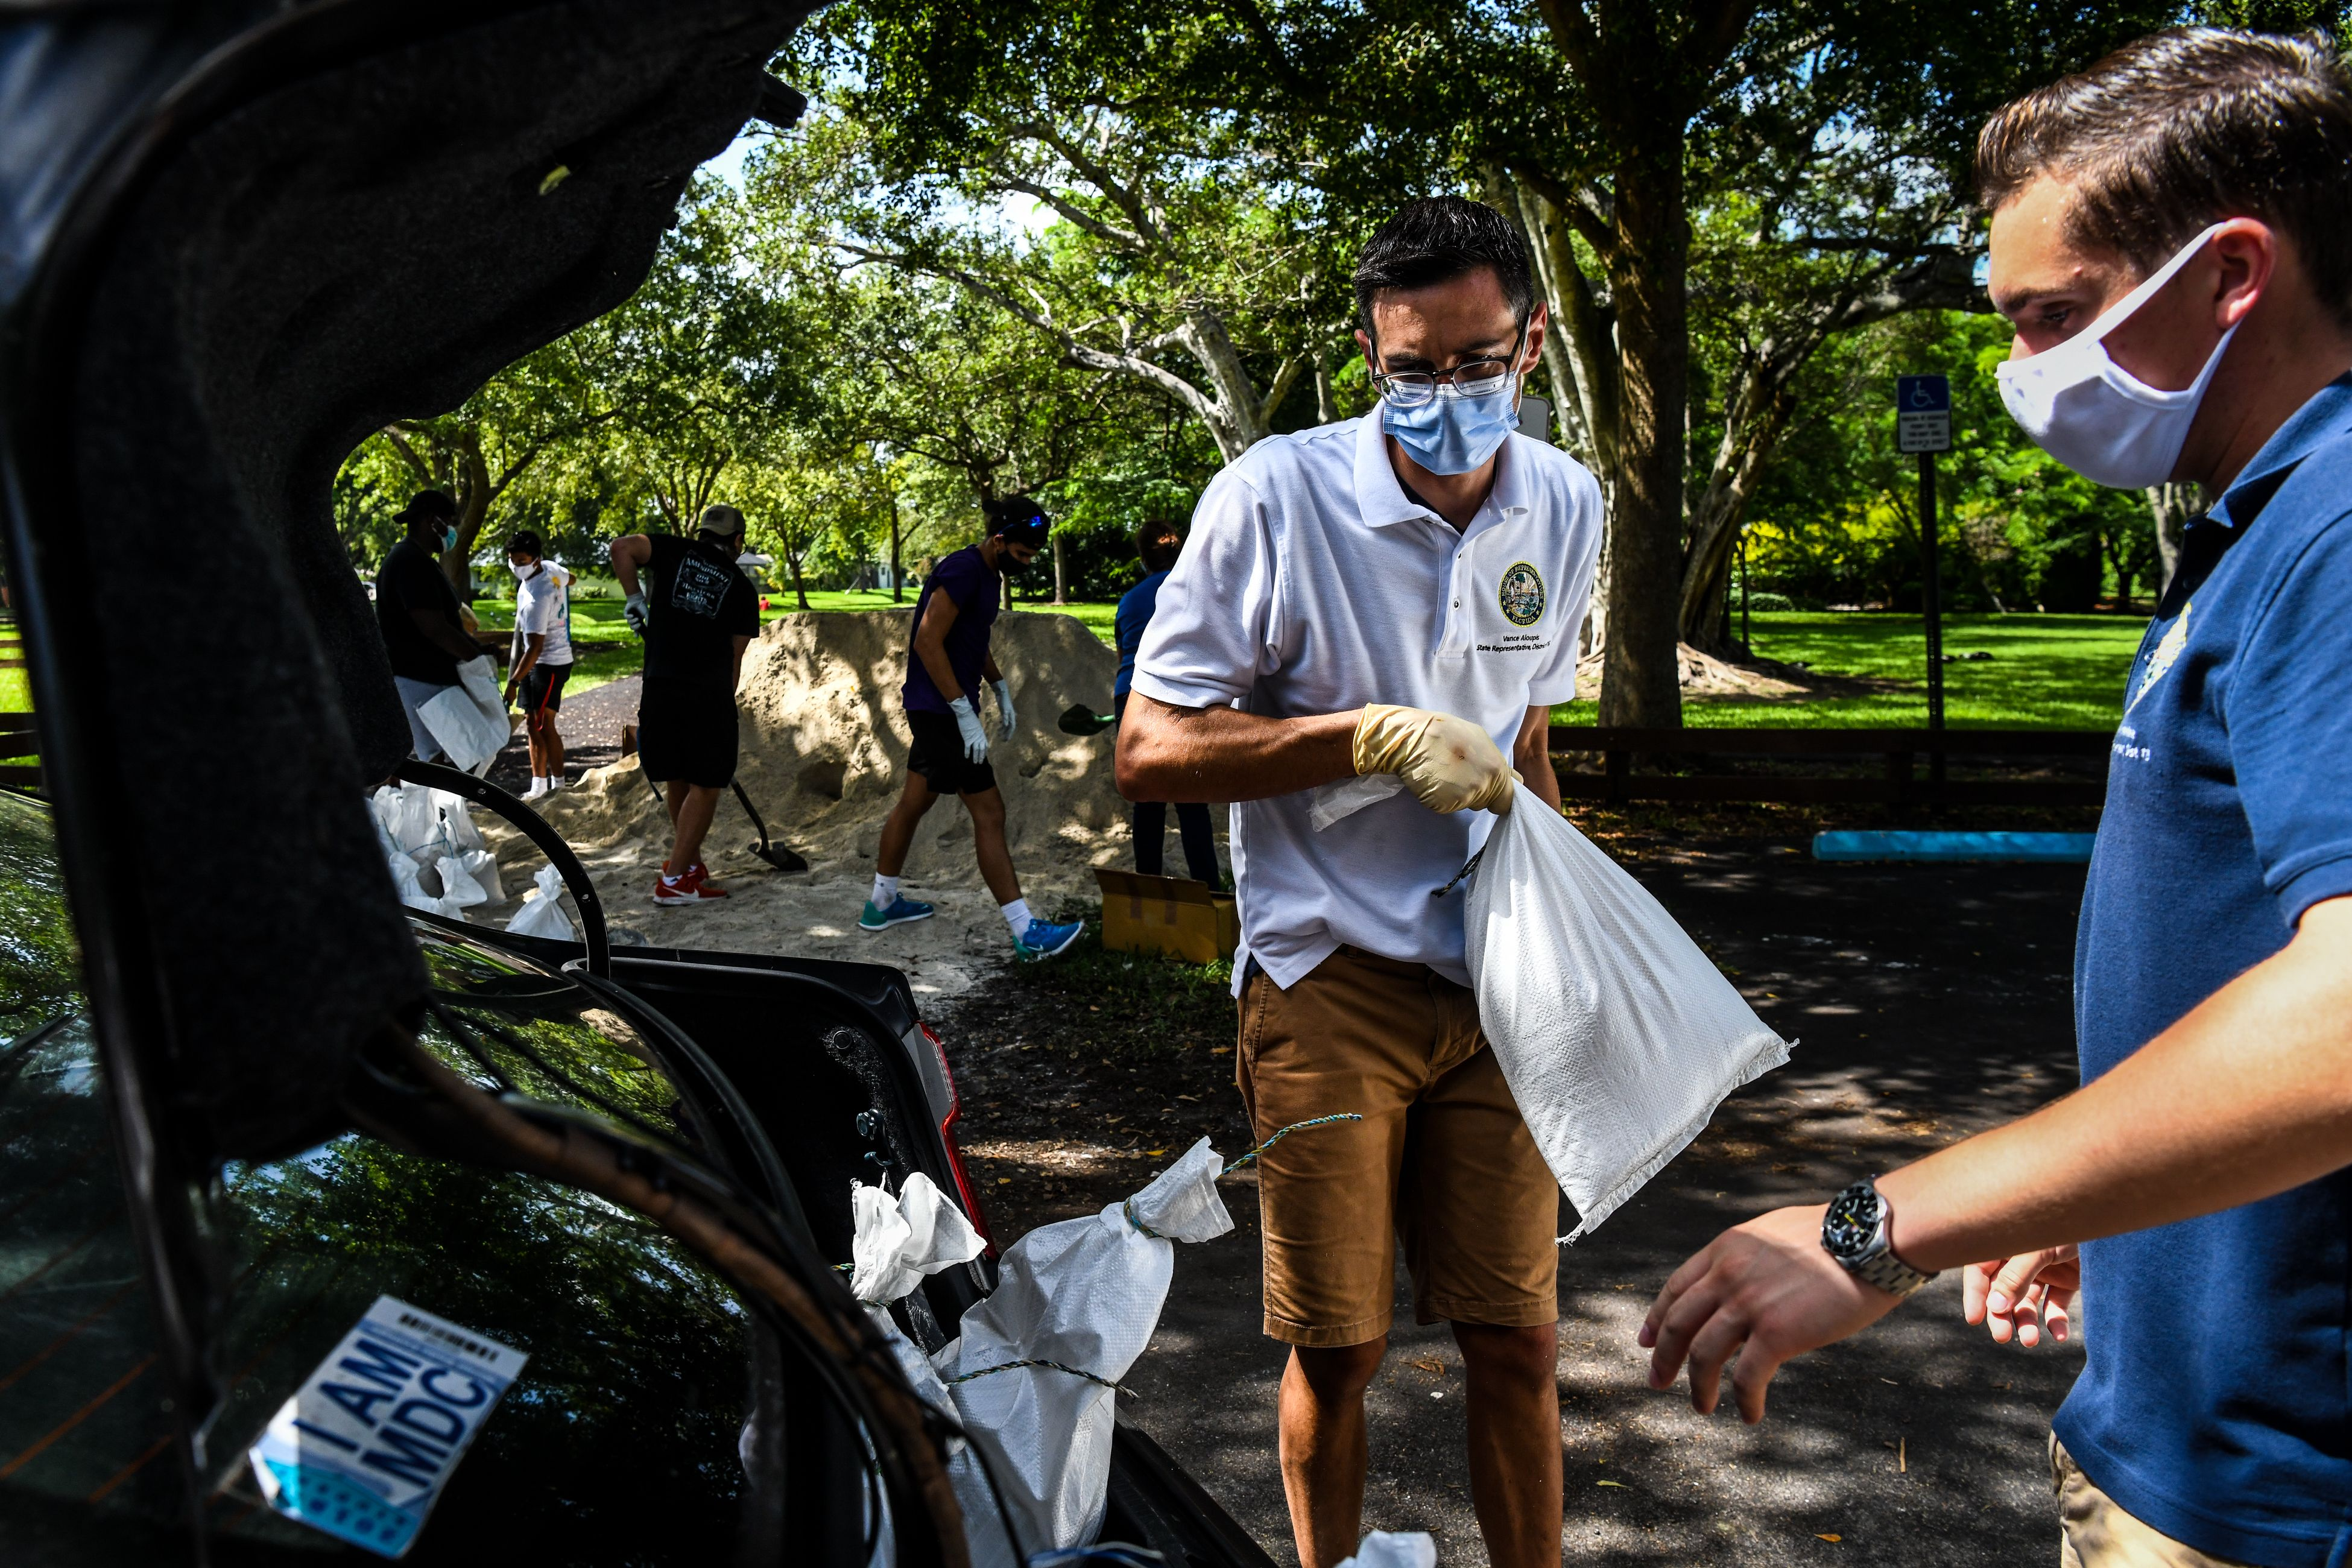 Member of Florida House of Representatives Vance Aloupis (center) puts sand bags in a resident's car trunk in Palmetto Bay near Miami, on Friday as Floridians prepare for Hurricane Isaias.